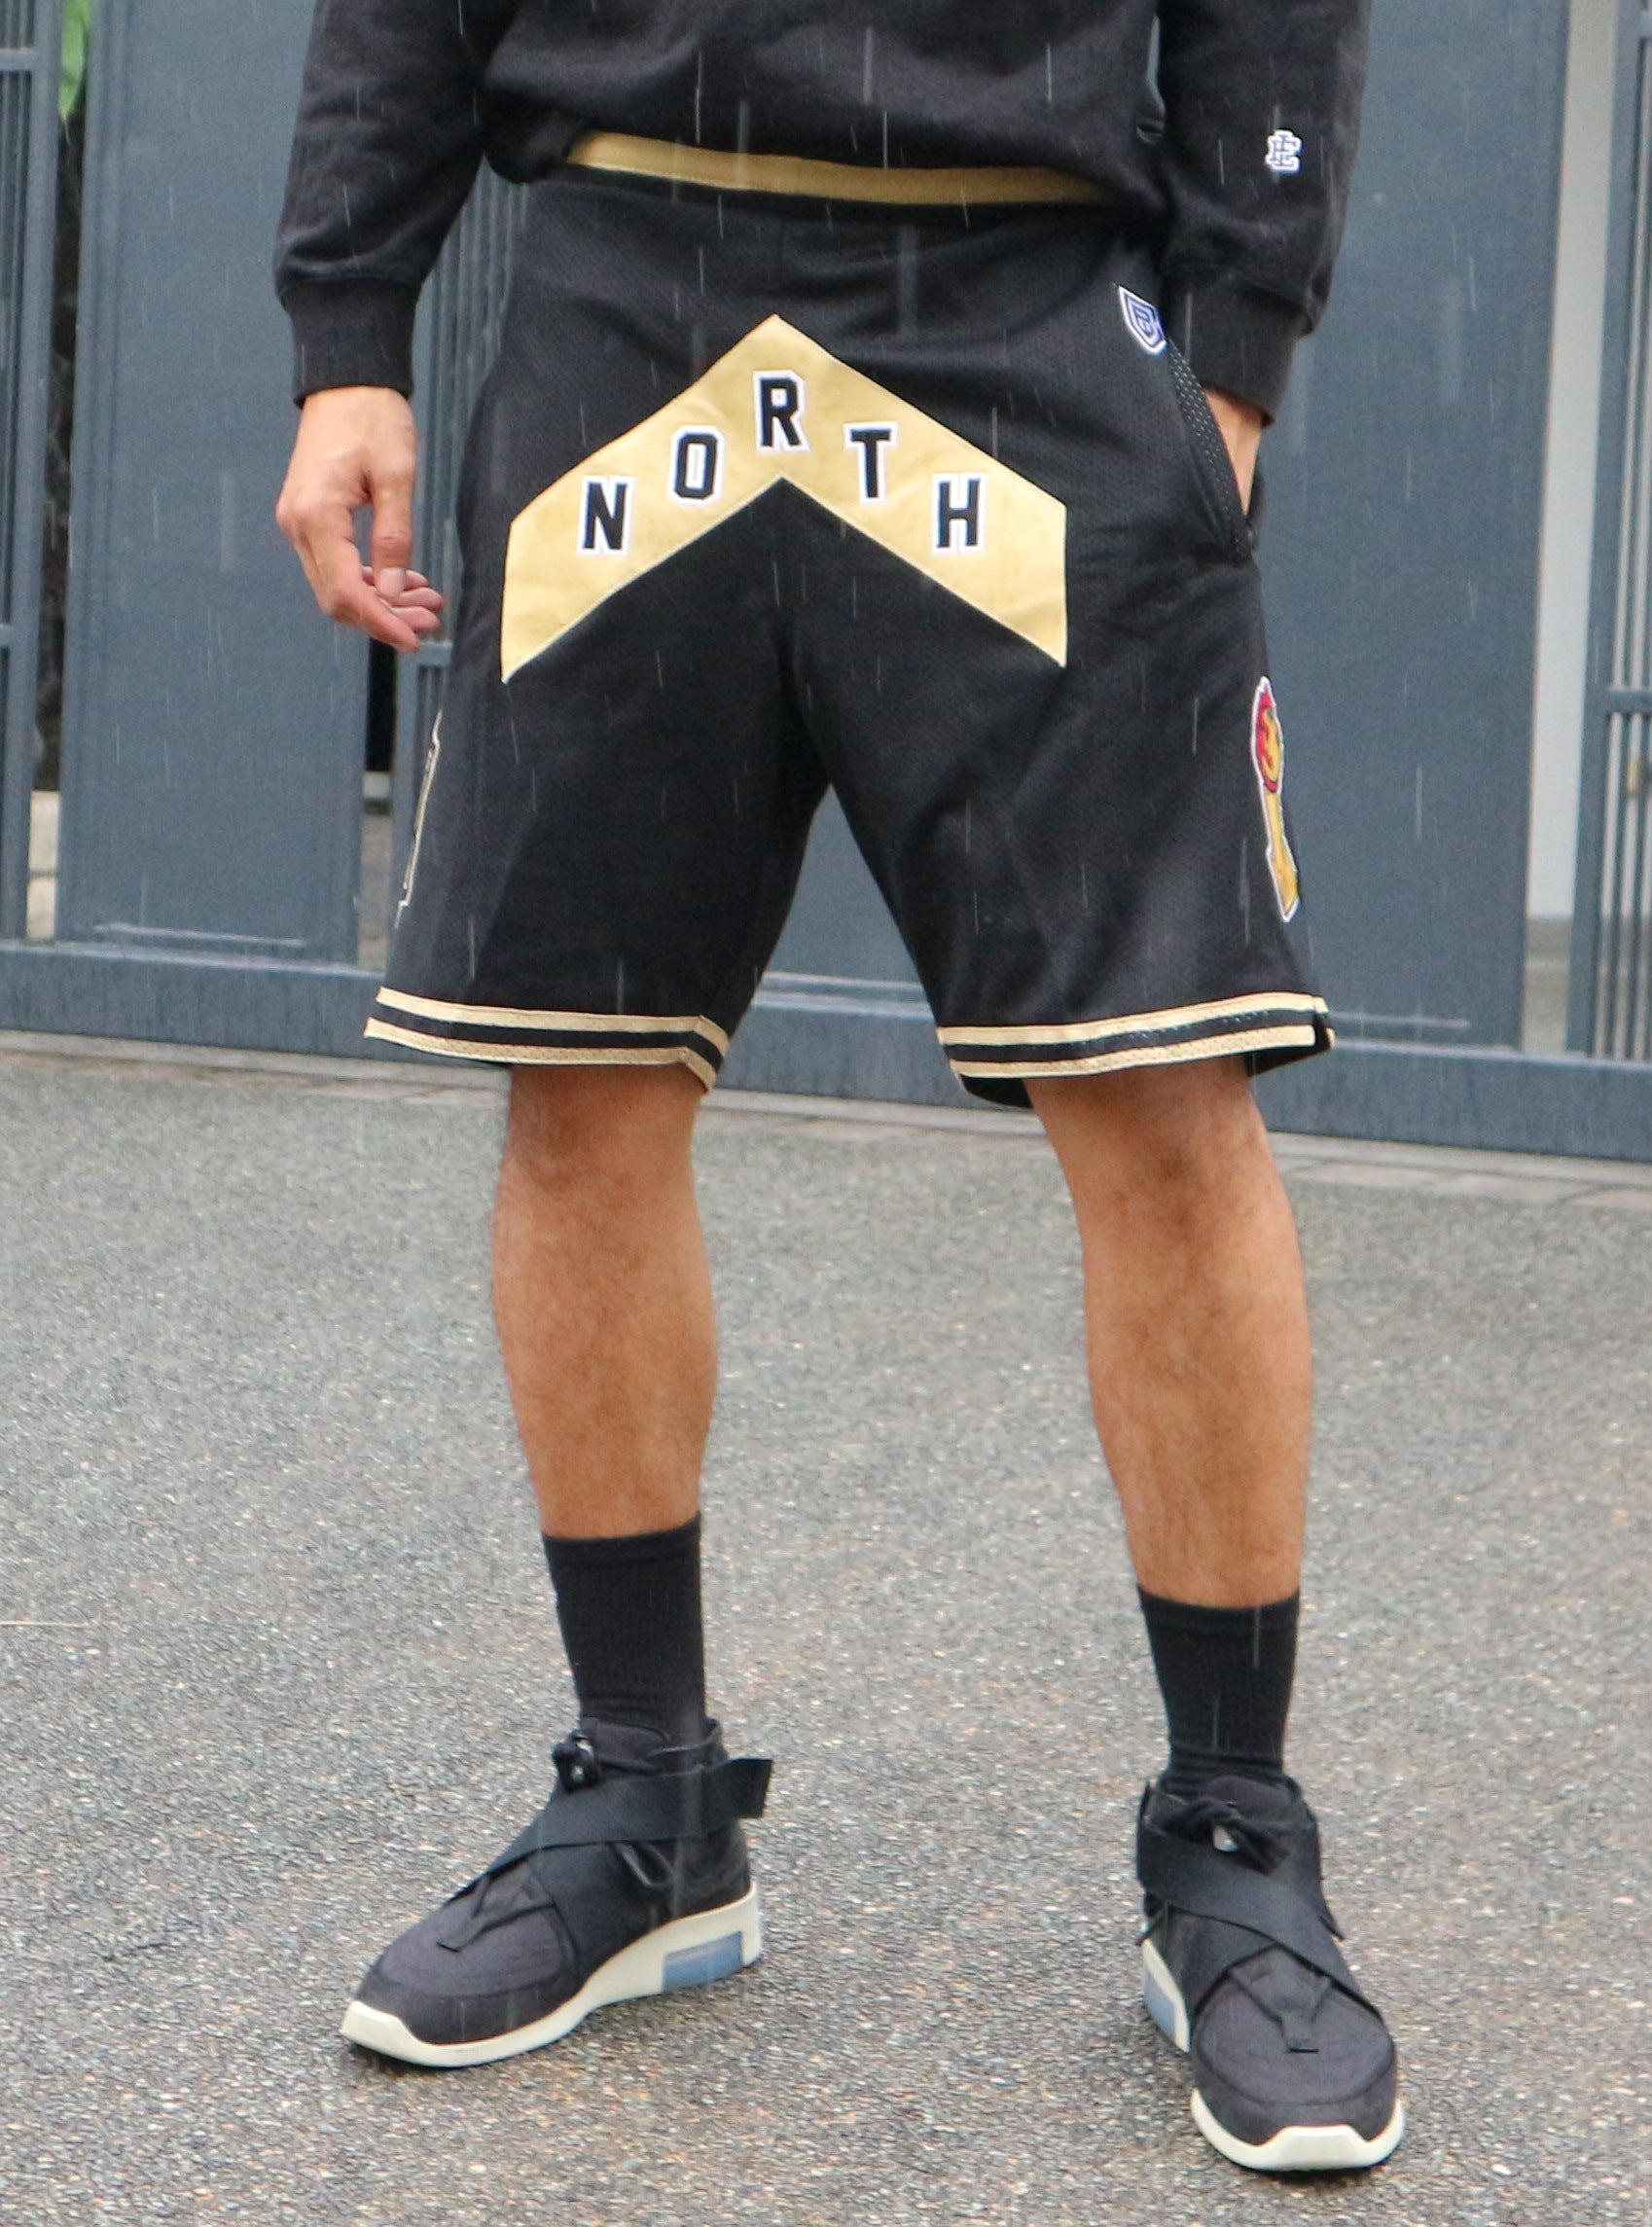 """We The North"" Raptors Championship Shorts"